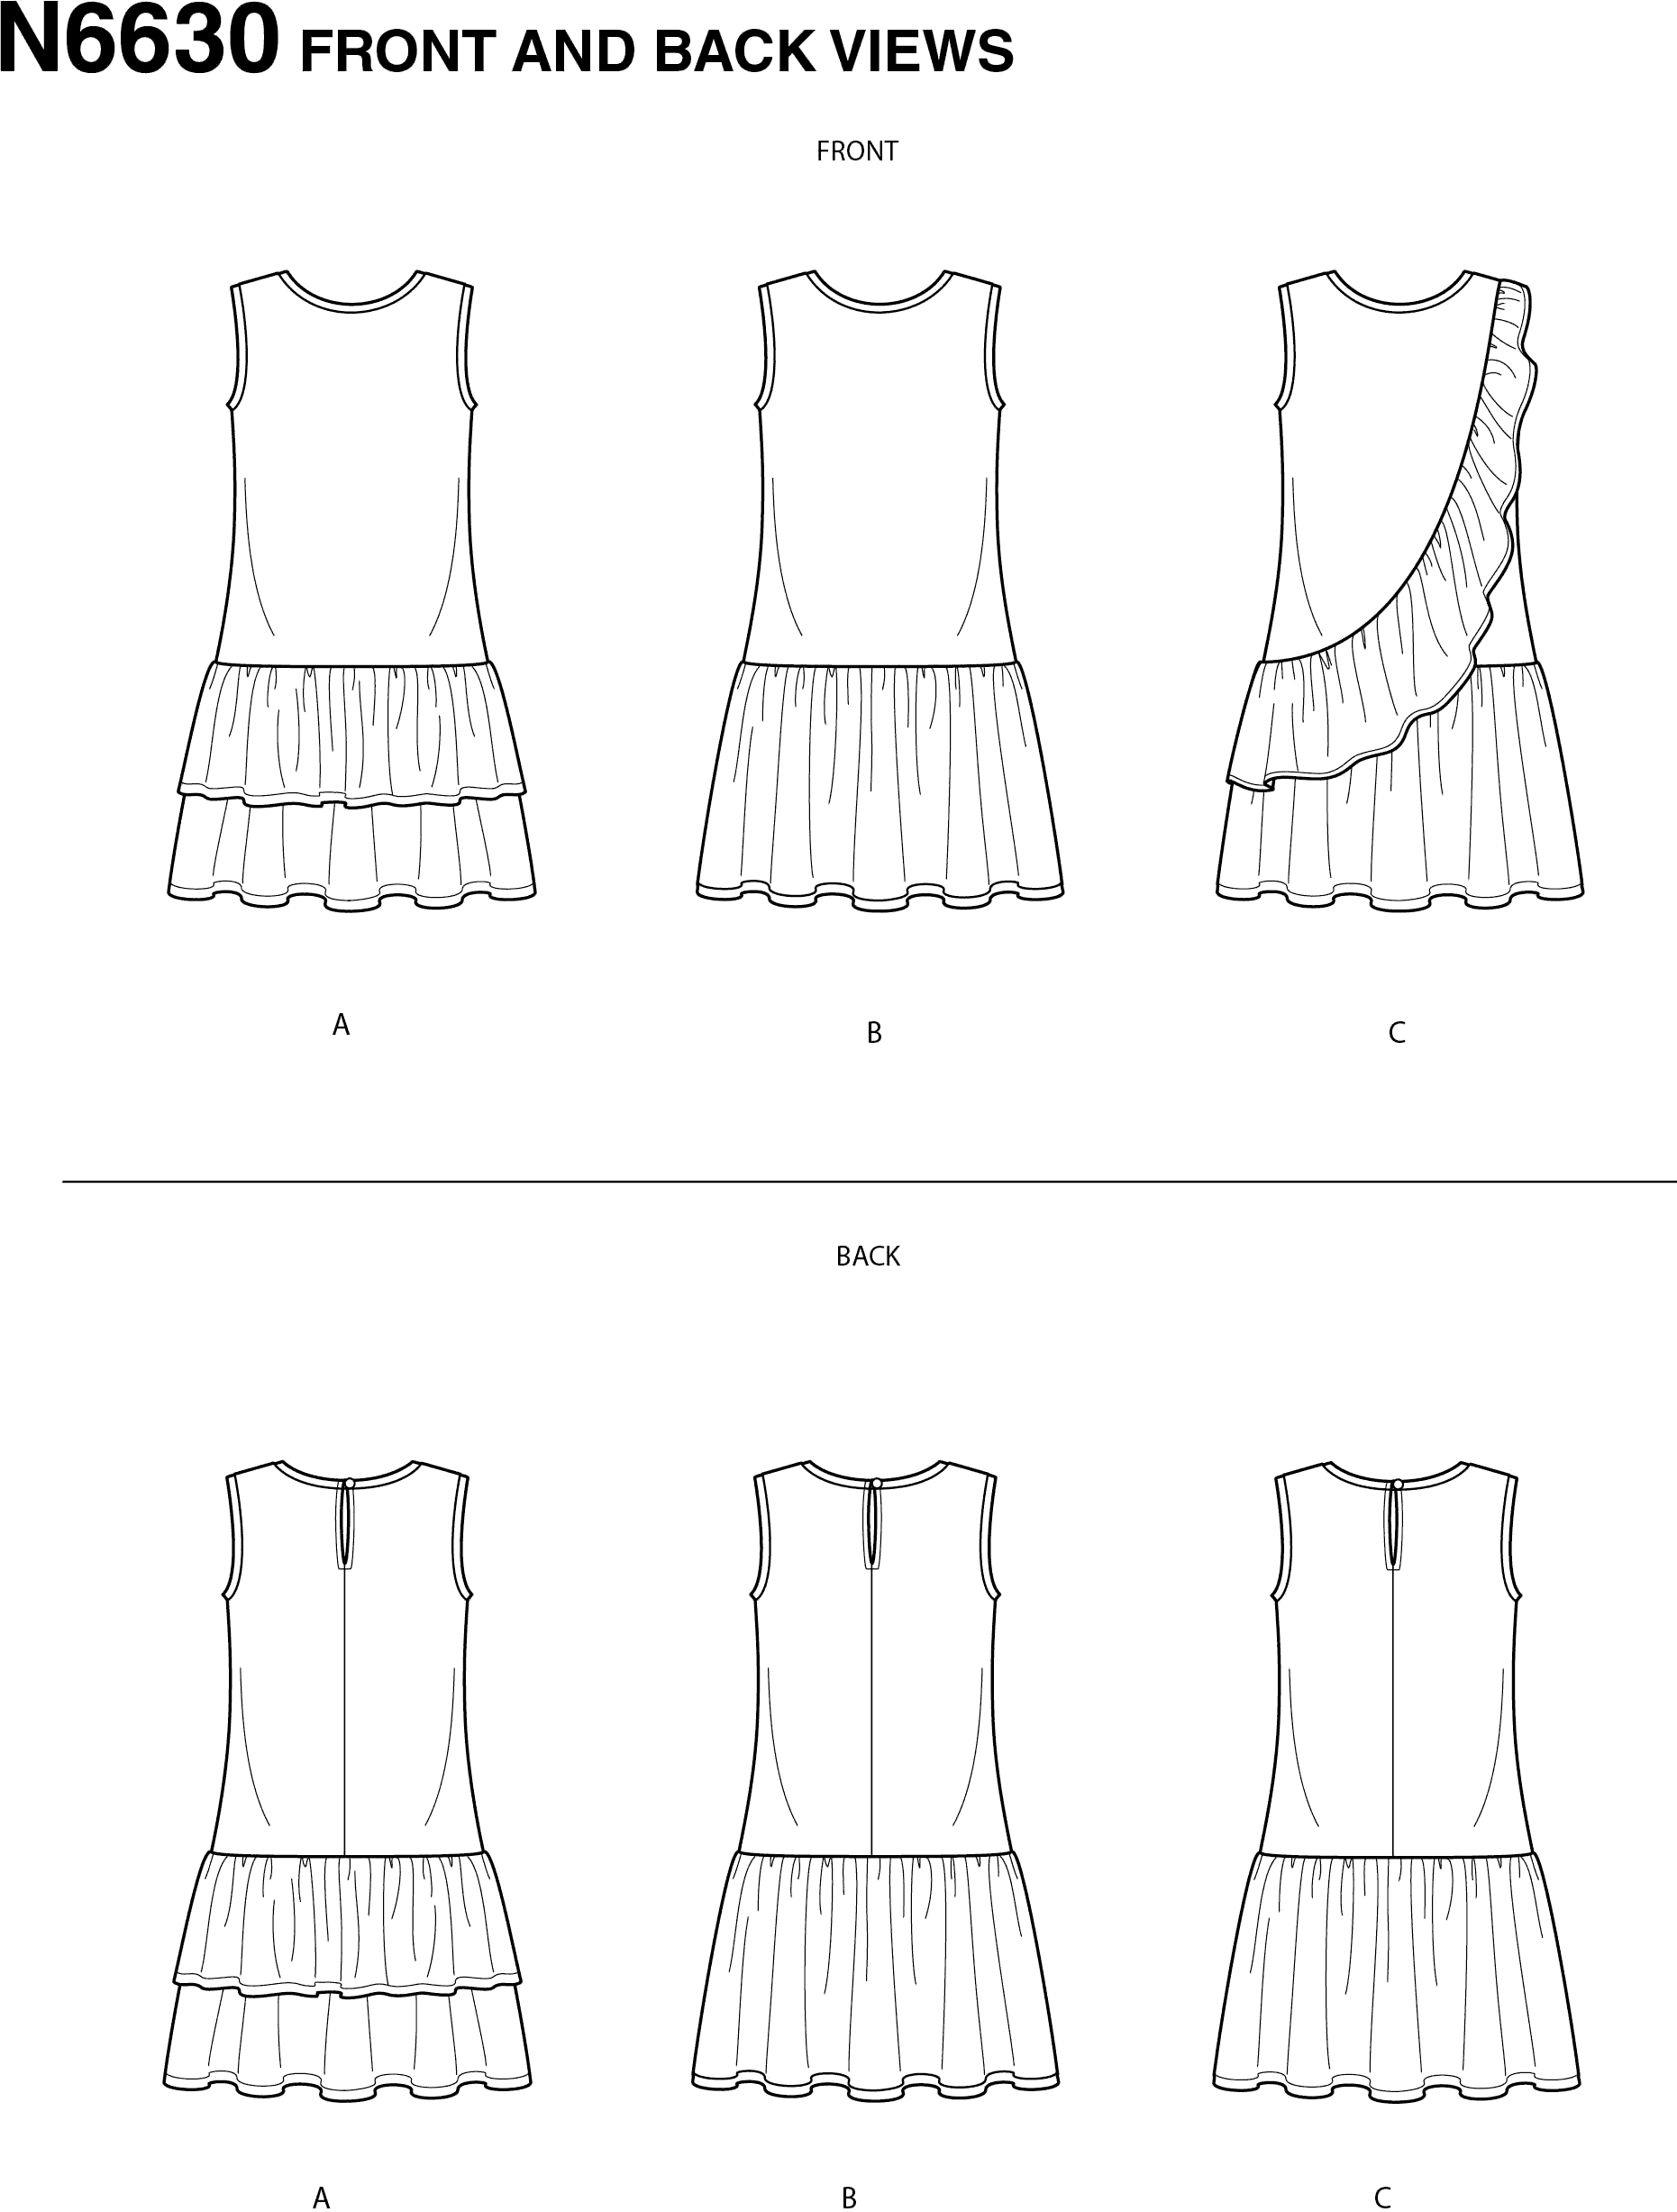 New Look Sewing Pattern N6630 Childrens And Girls Dresses 6630 Line Art From Patternsandplains.com